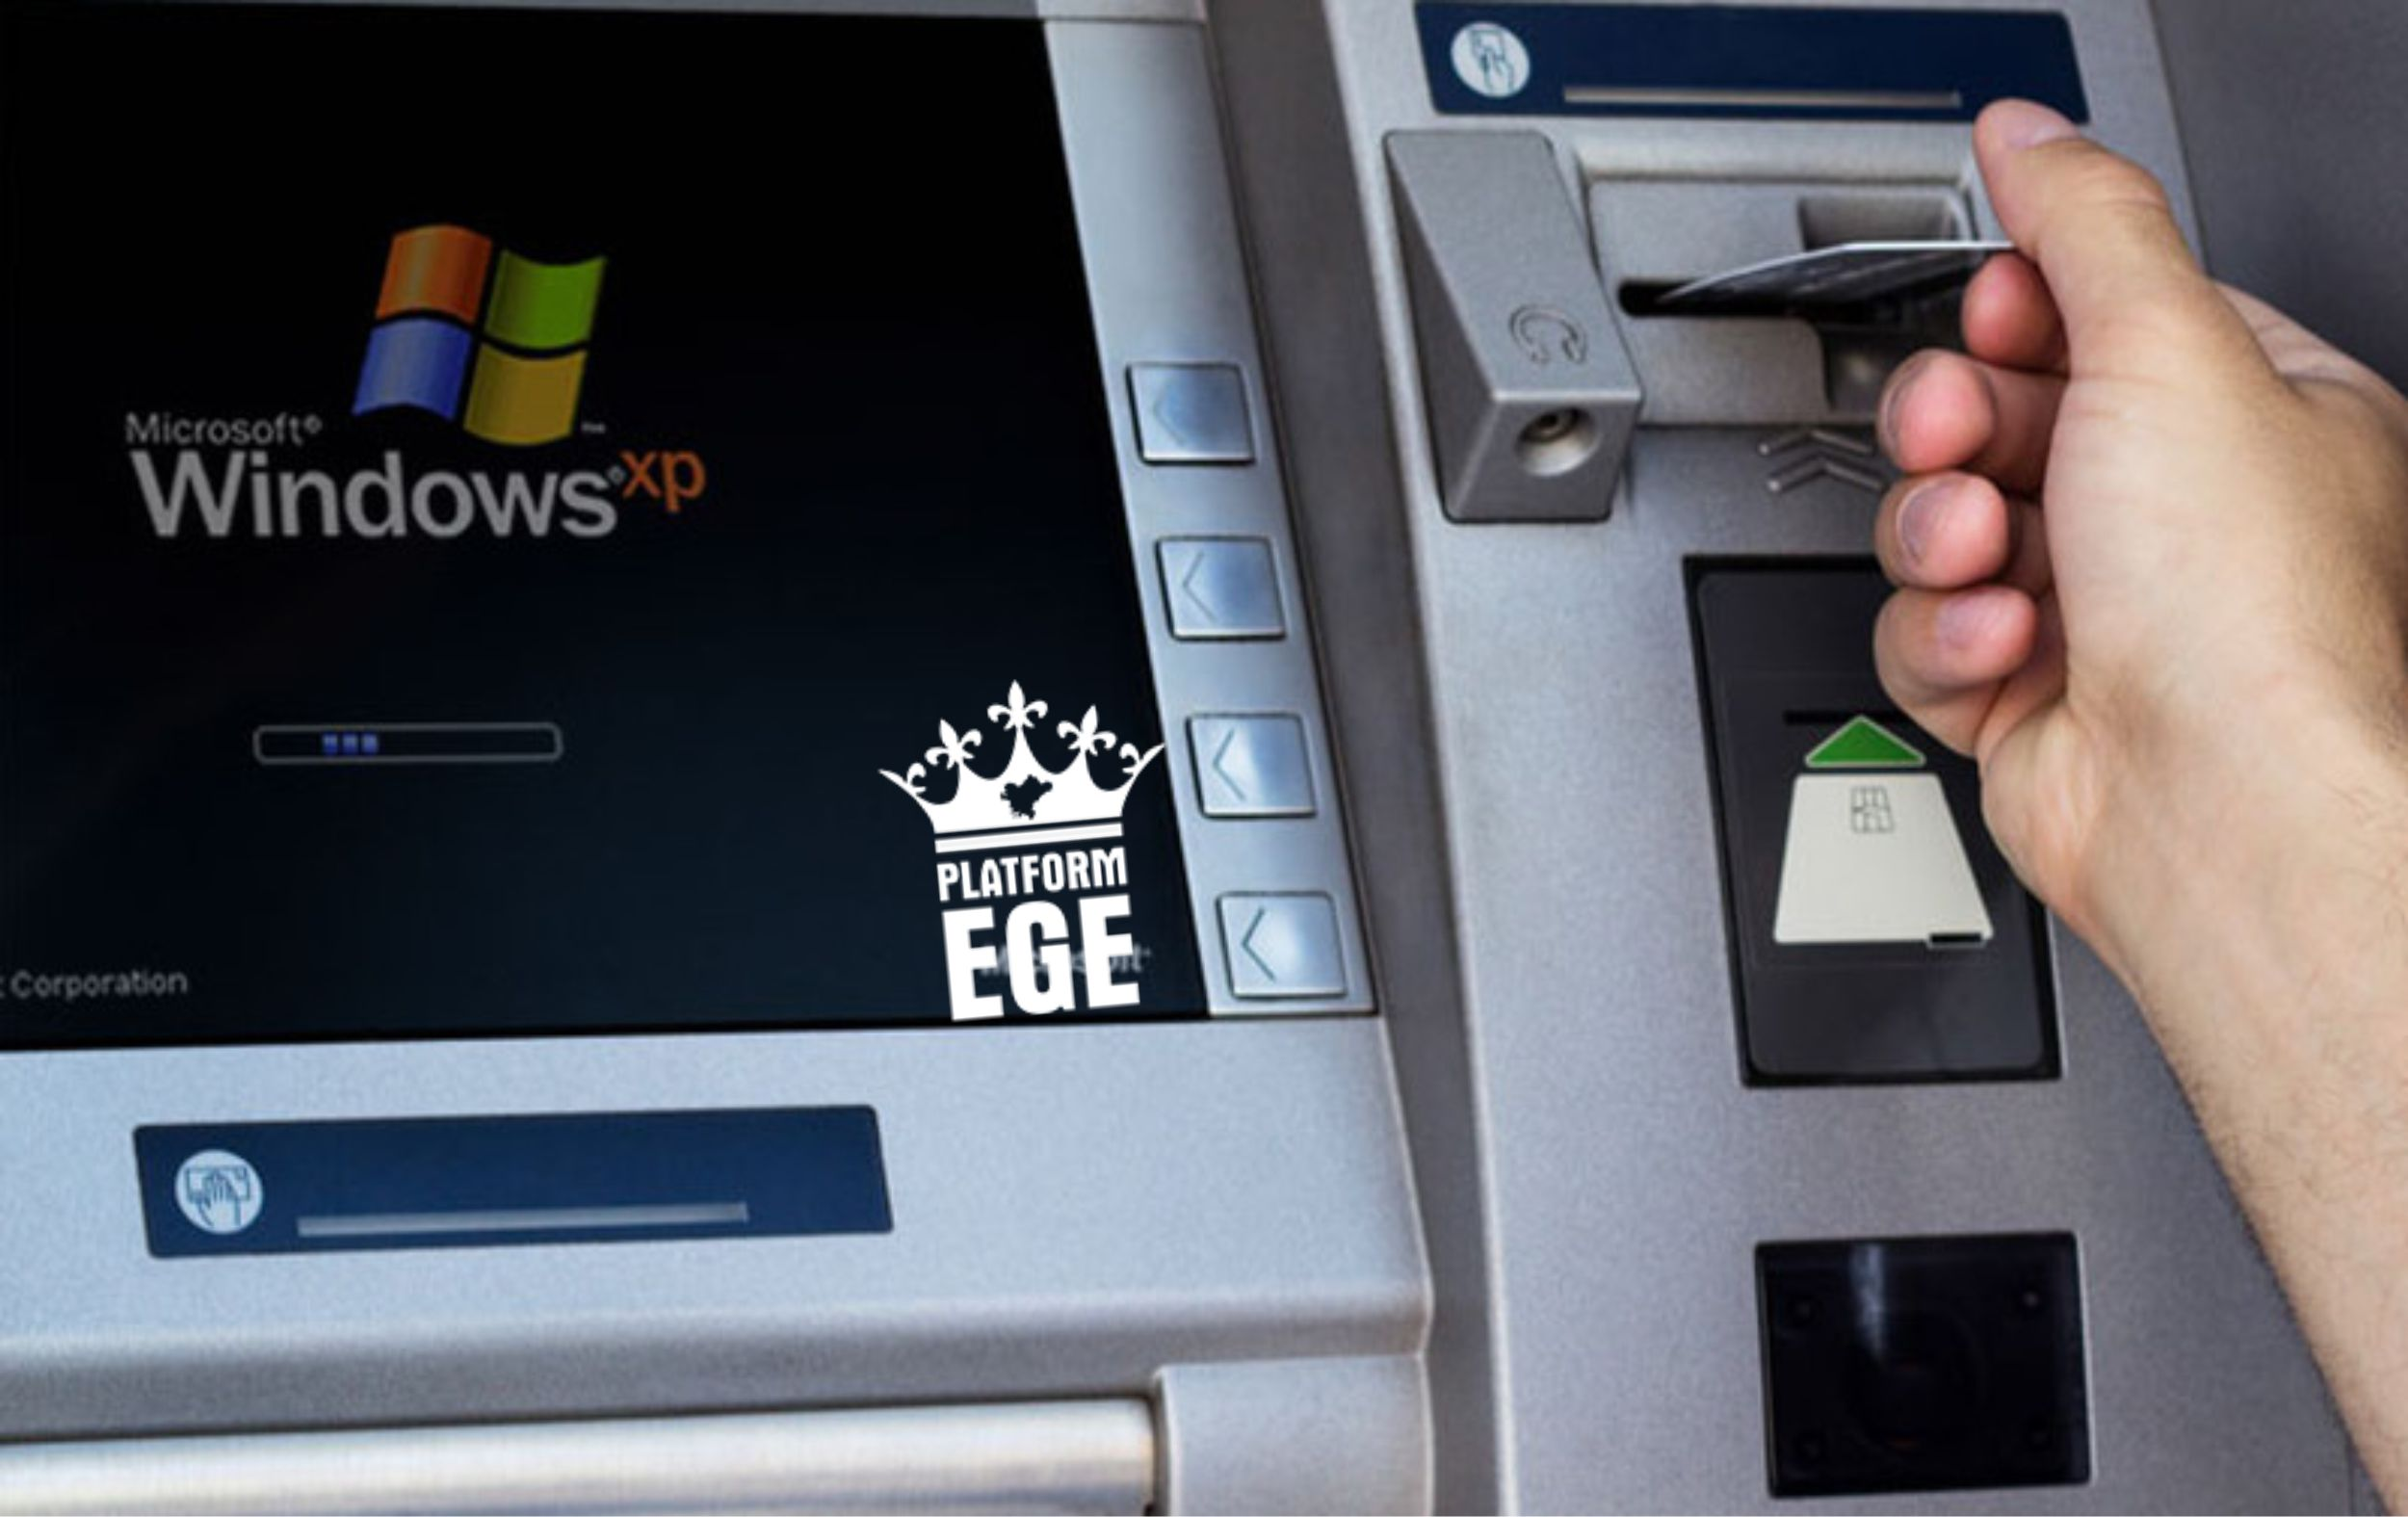 atm_windows_xp0